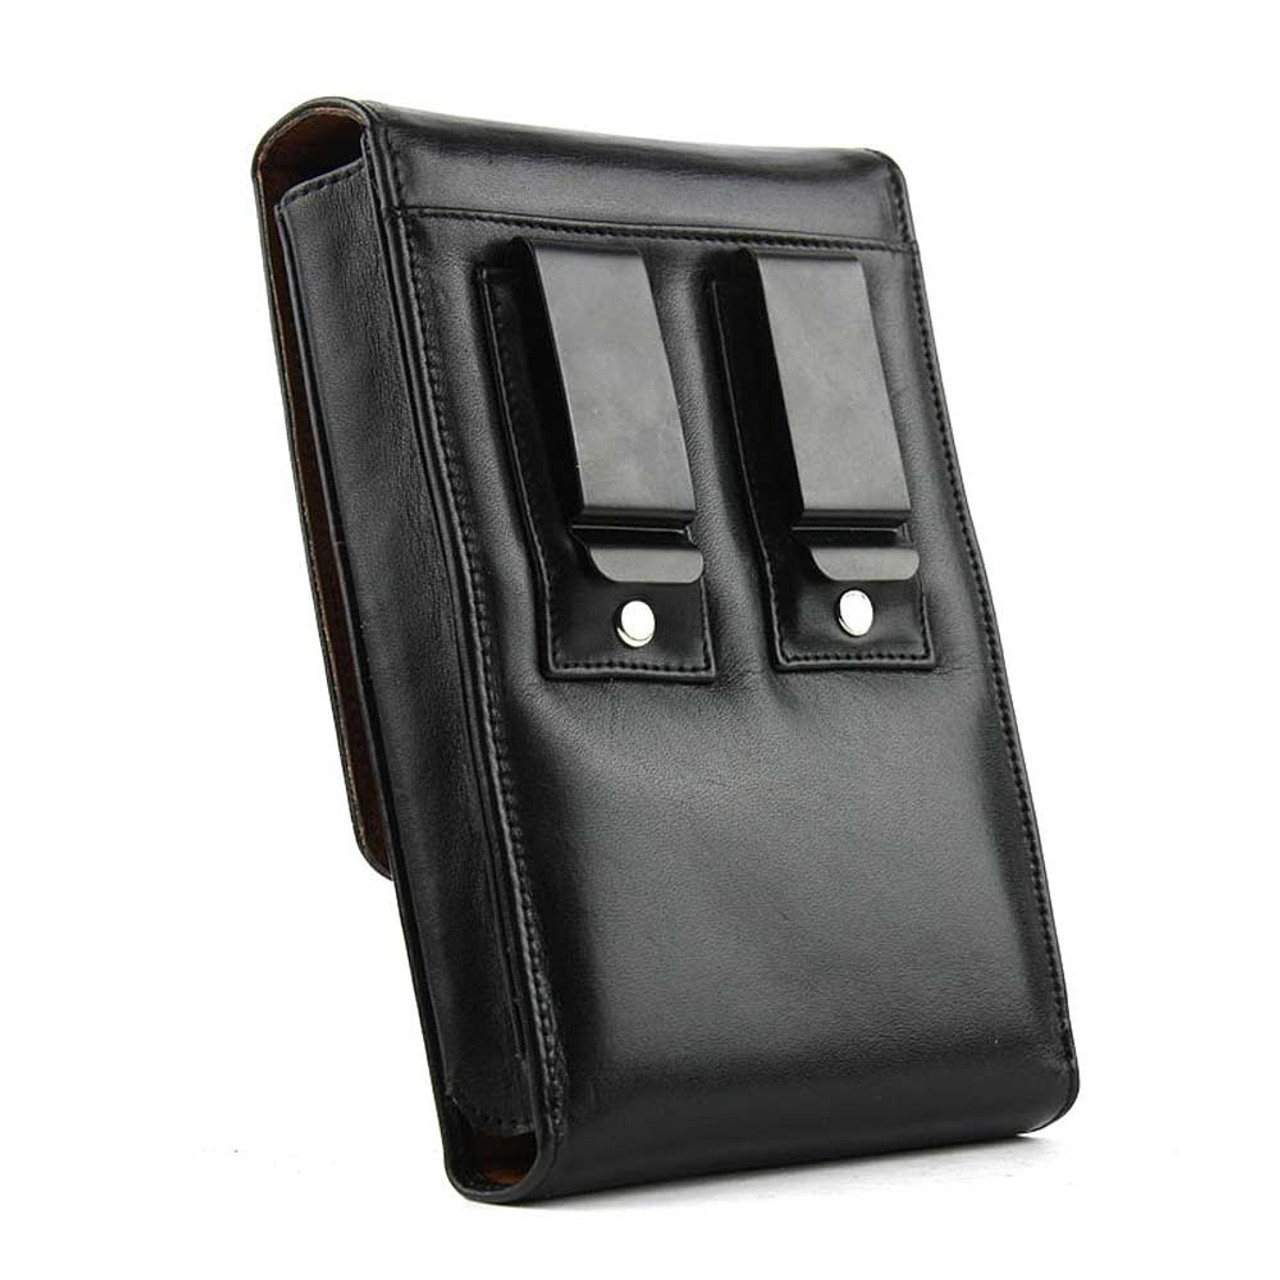 Walther PPS .40cal Holster